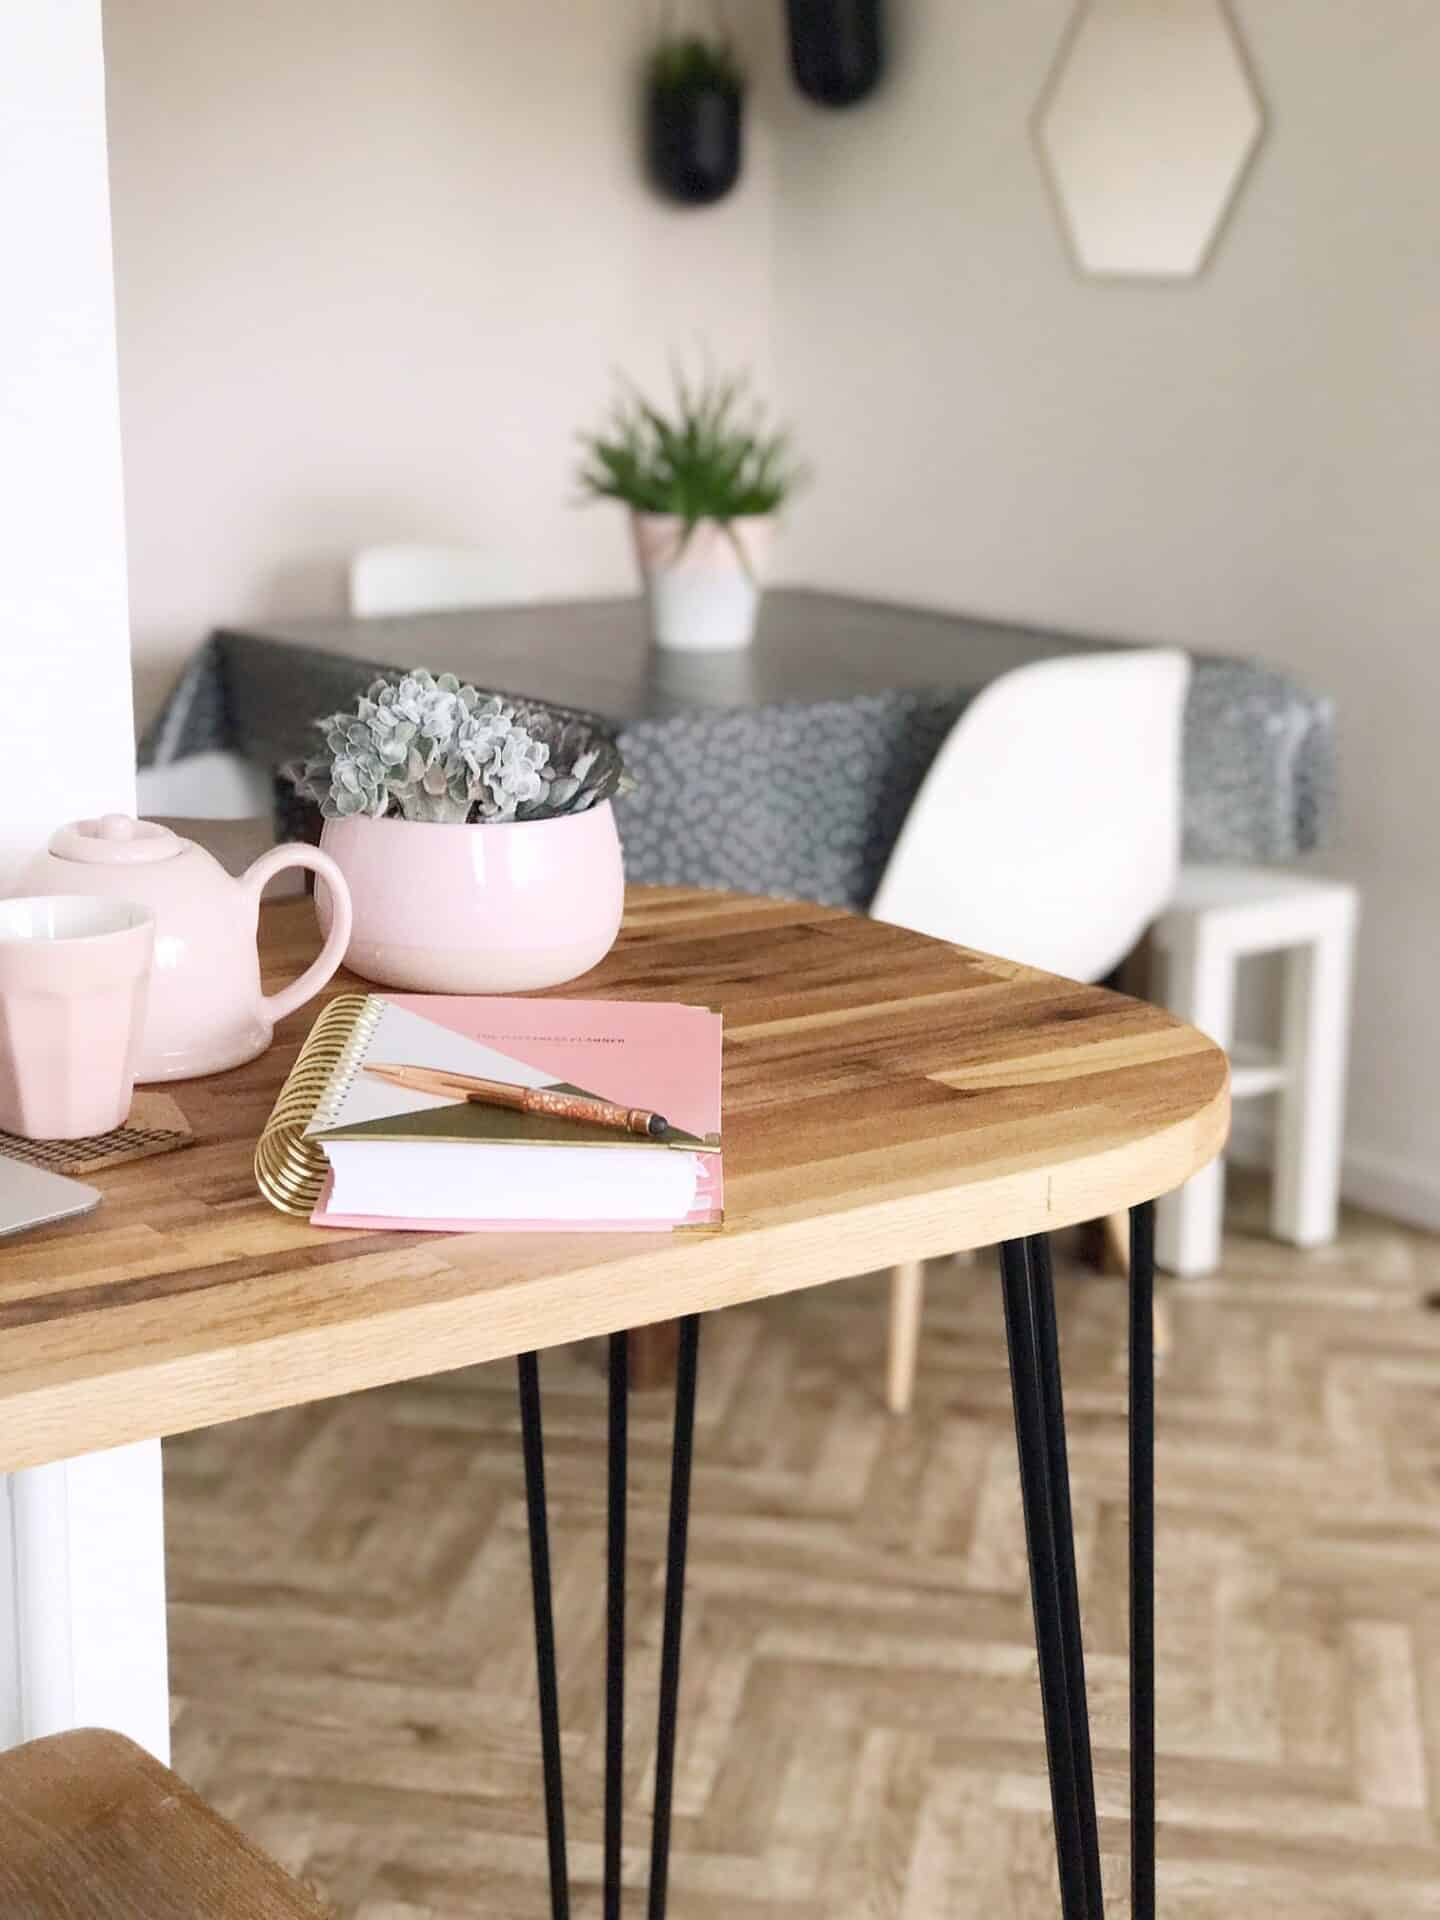 Breakfast bar with pink tableware and black hairpin legs